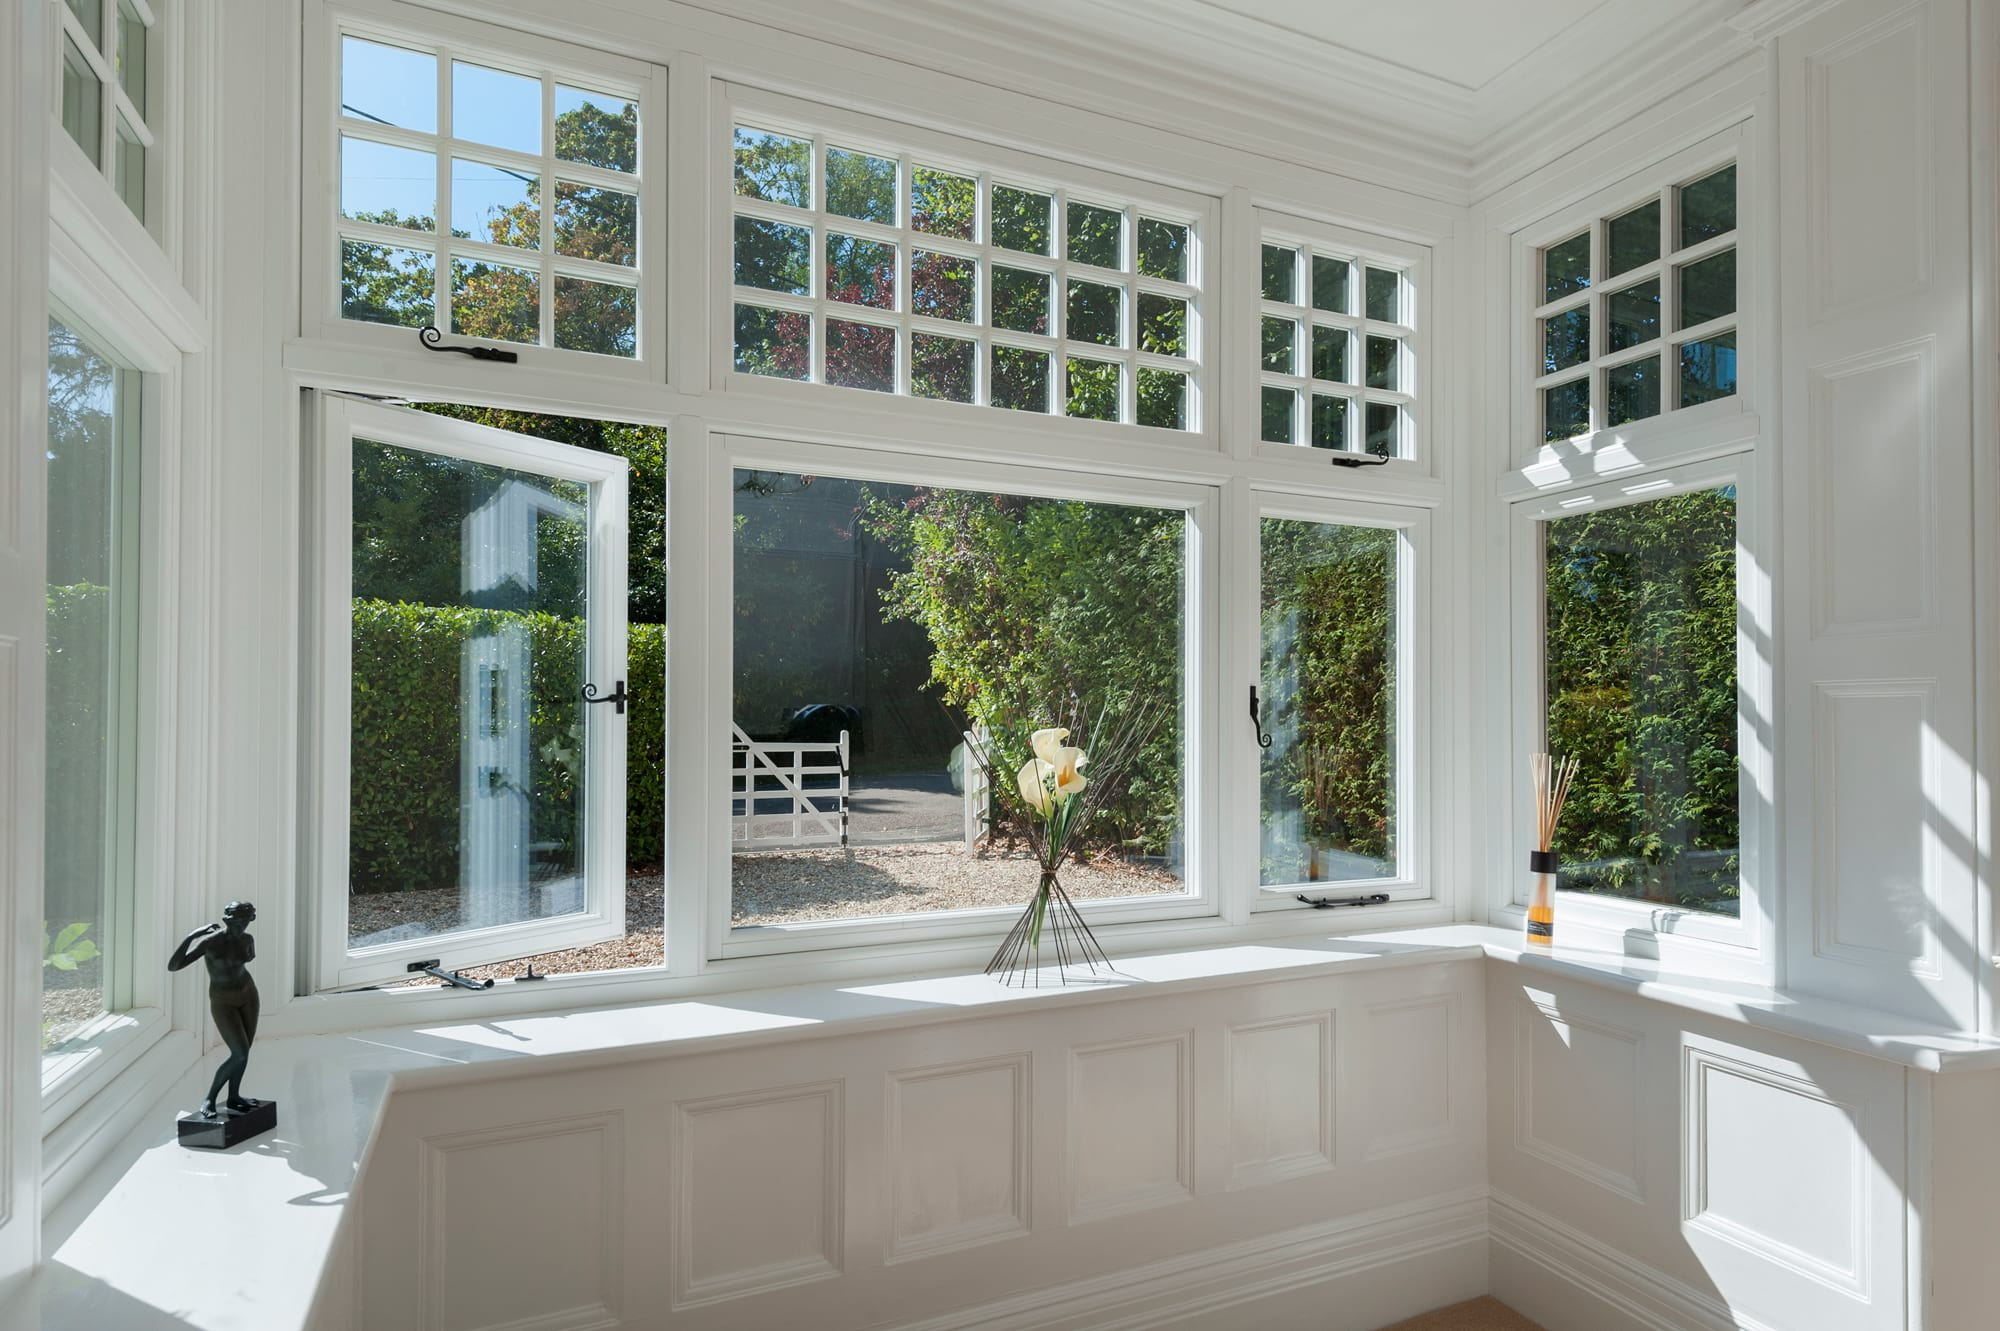 According to double glazing window manufacturers who specialise in offering double glazing, the windows will save you money on household bills and the routine maintenance, care, and repairs often needed for single glazed windows with timber frames.